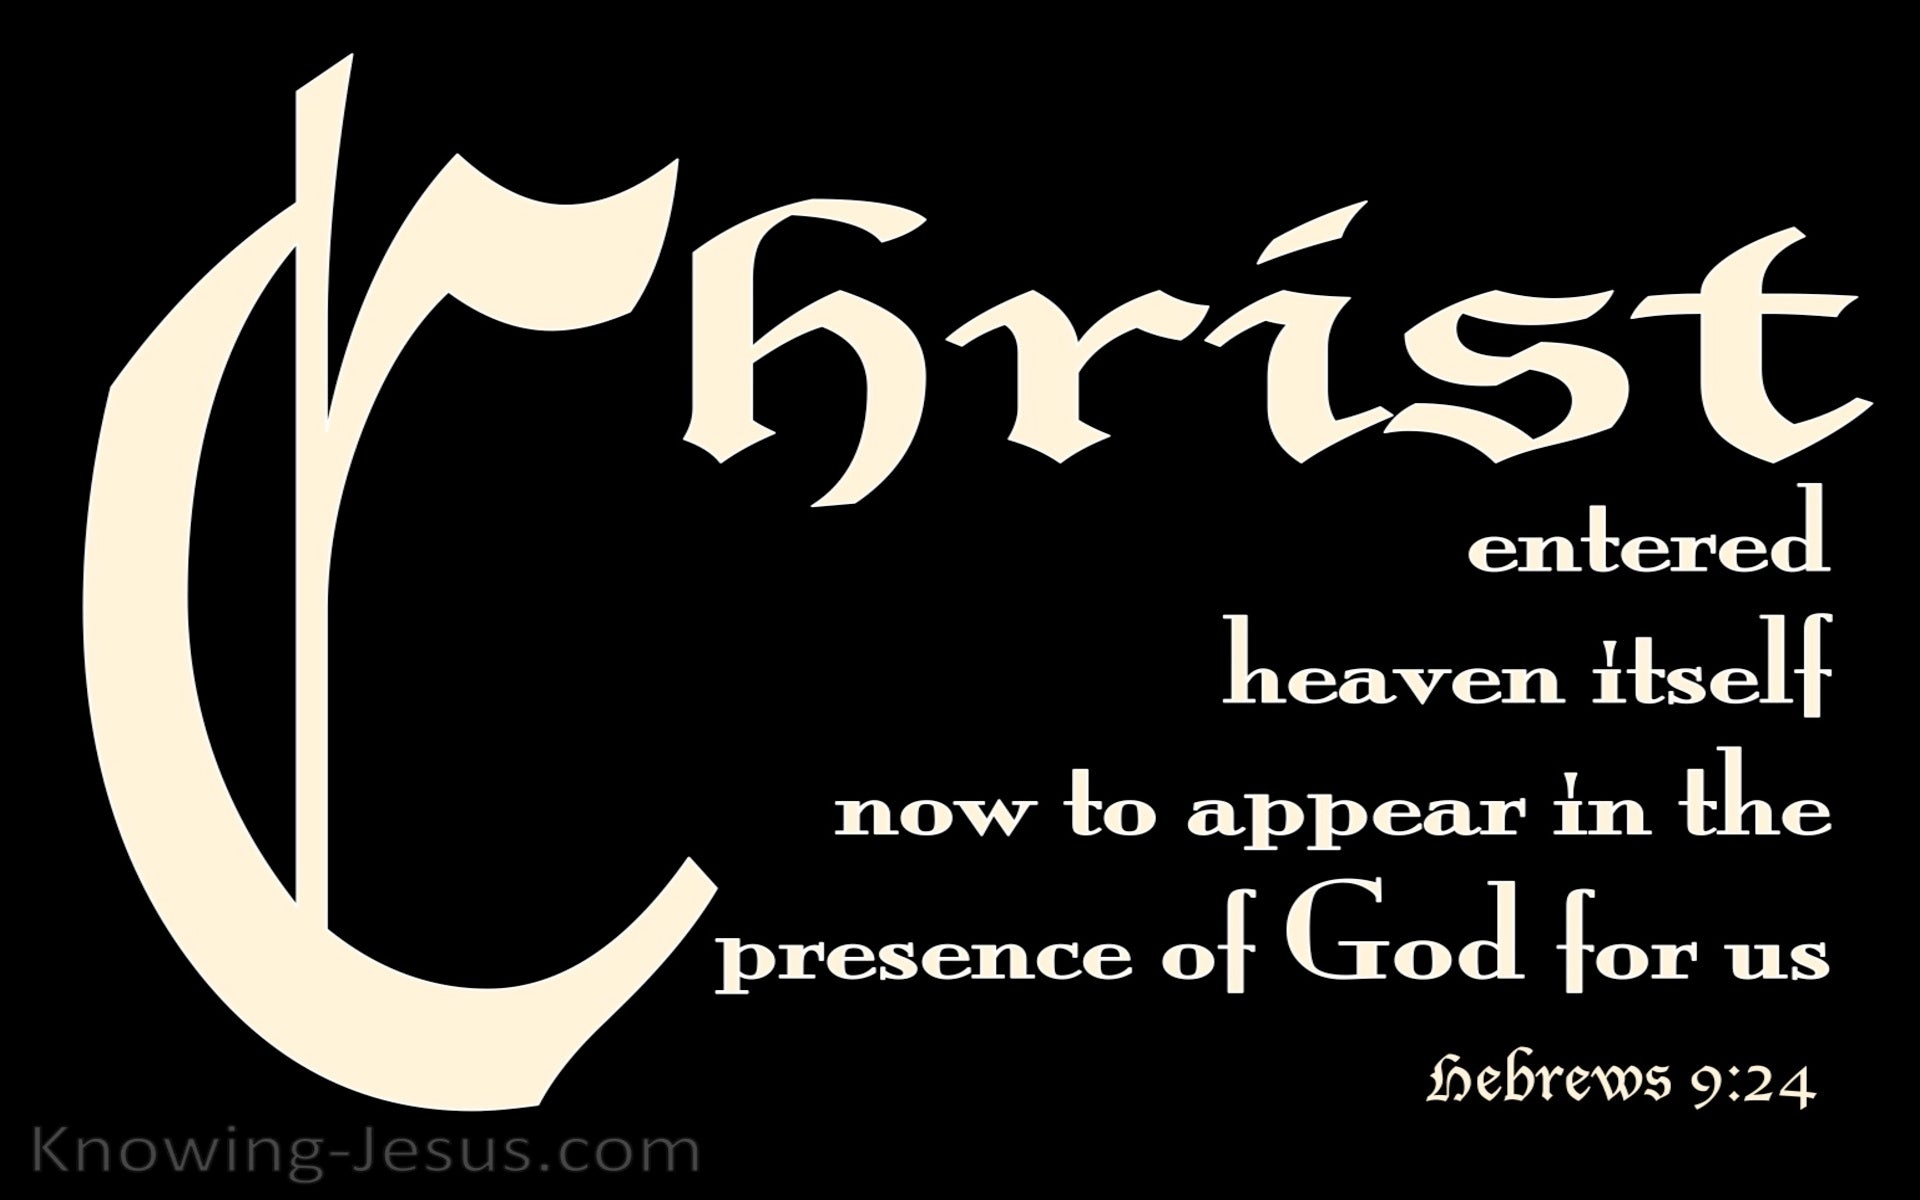 Hebrews 9:24 Christ Entered Heaven (black)